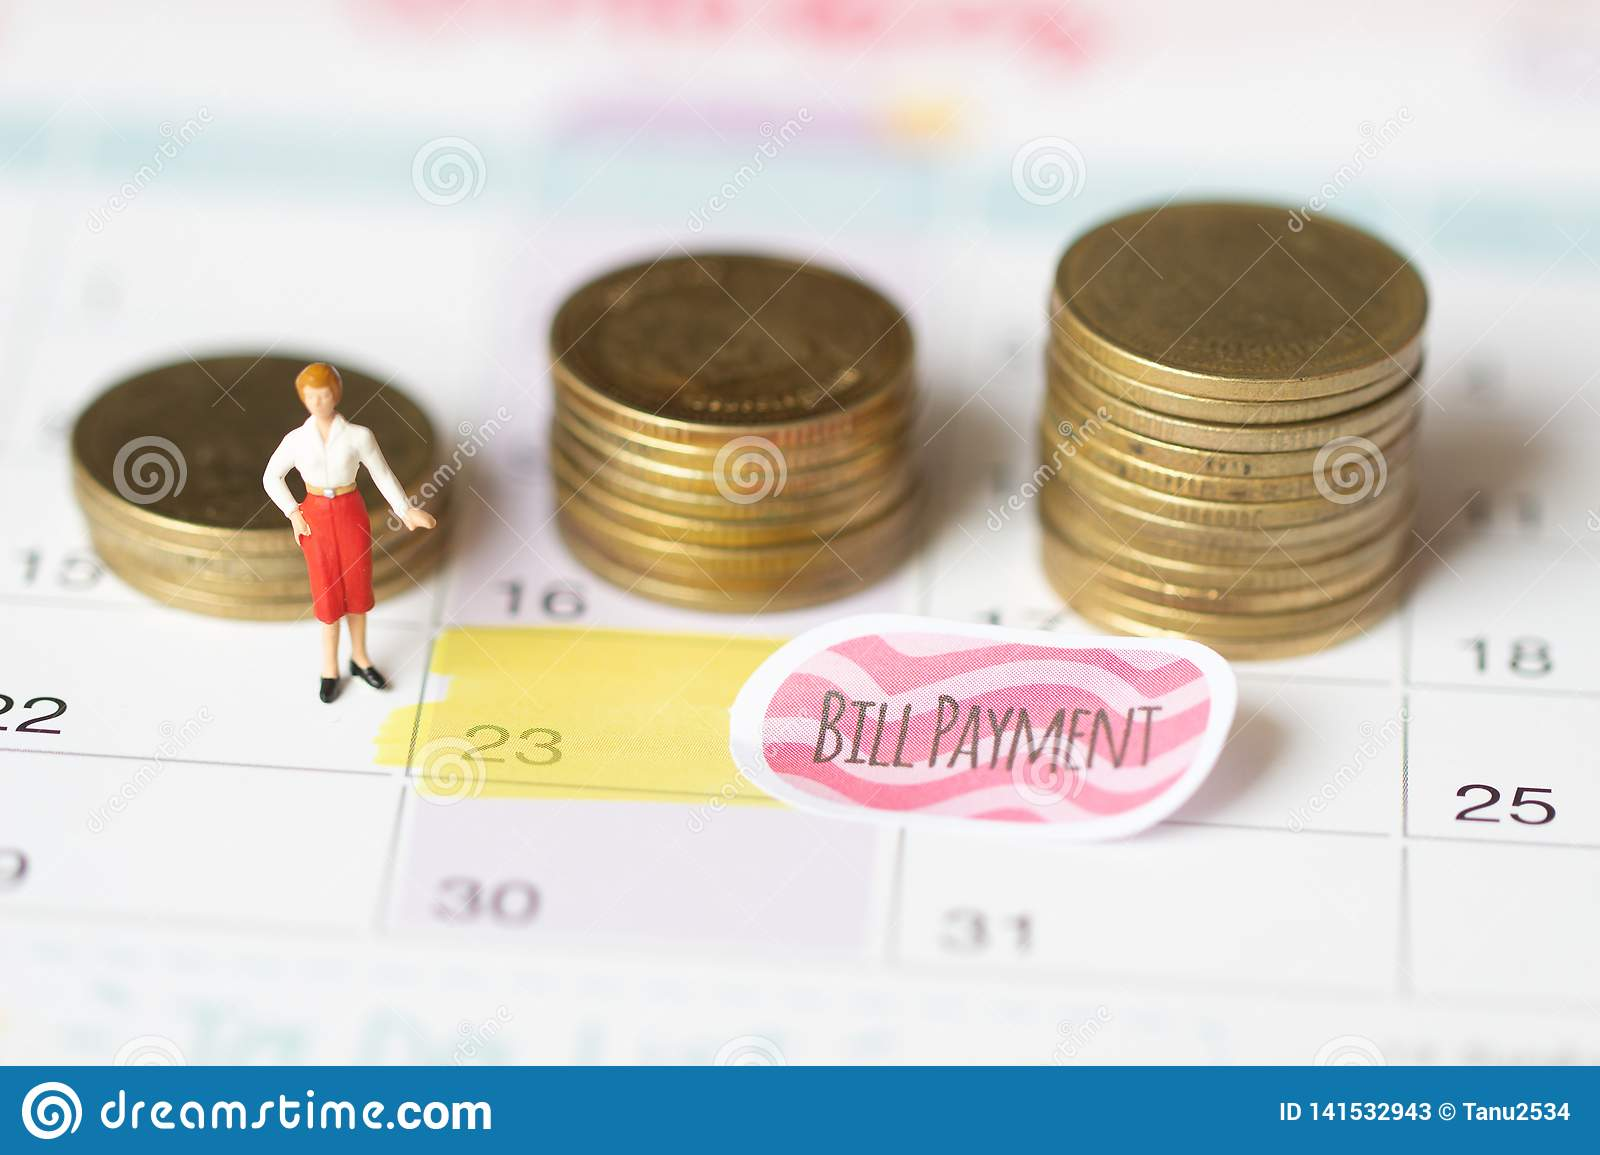 Saving money for bill payment concept. Holidays money savings concept. coin and bill payment. Collecting money in coin stack for